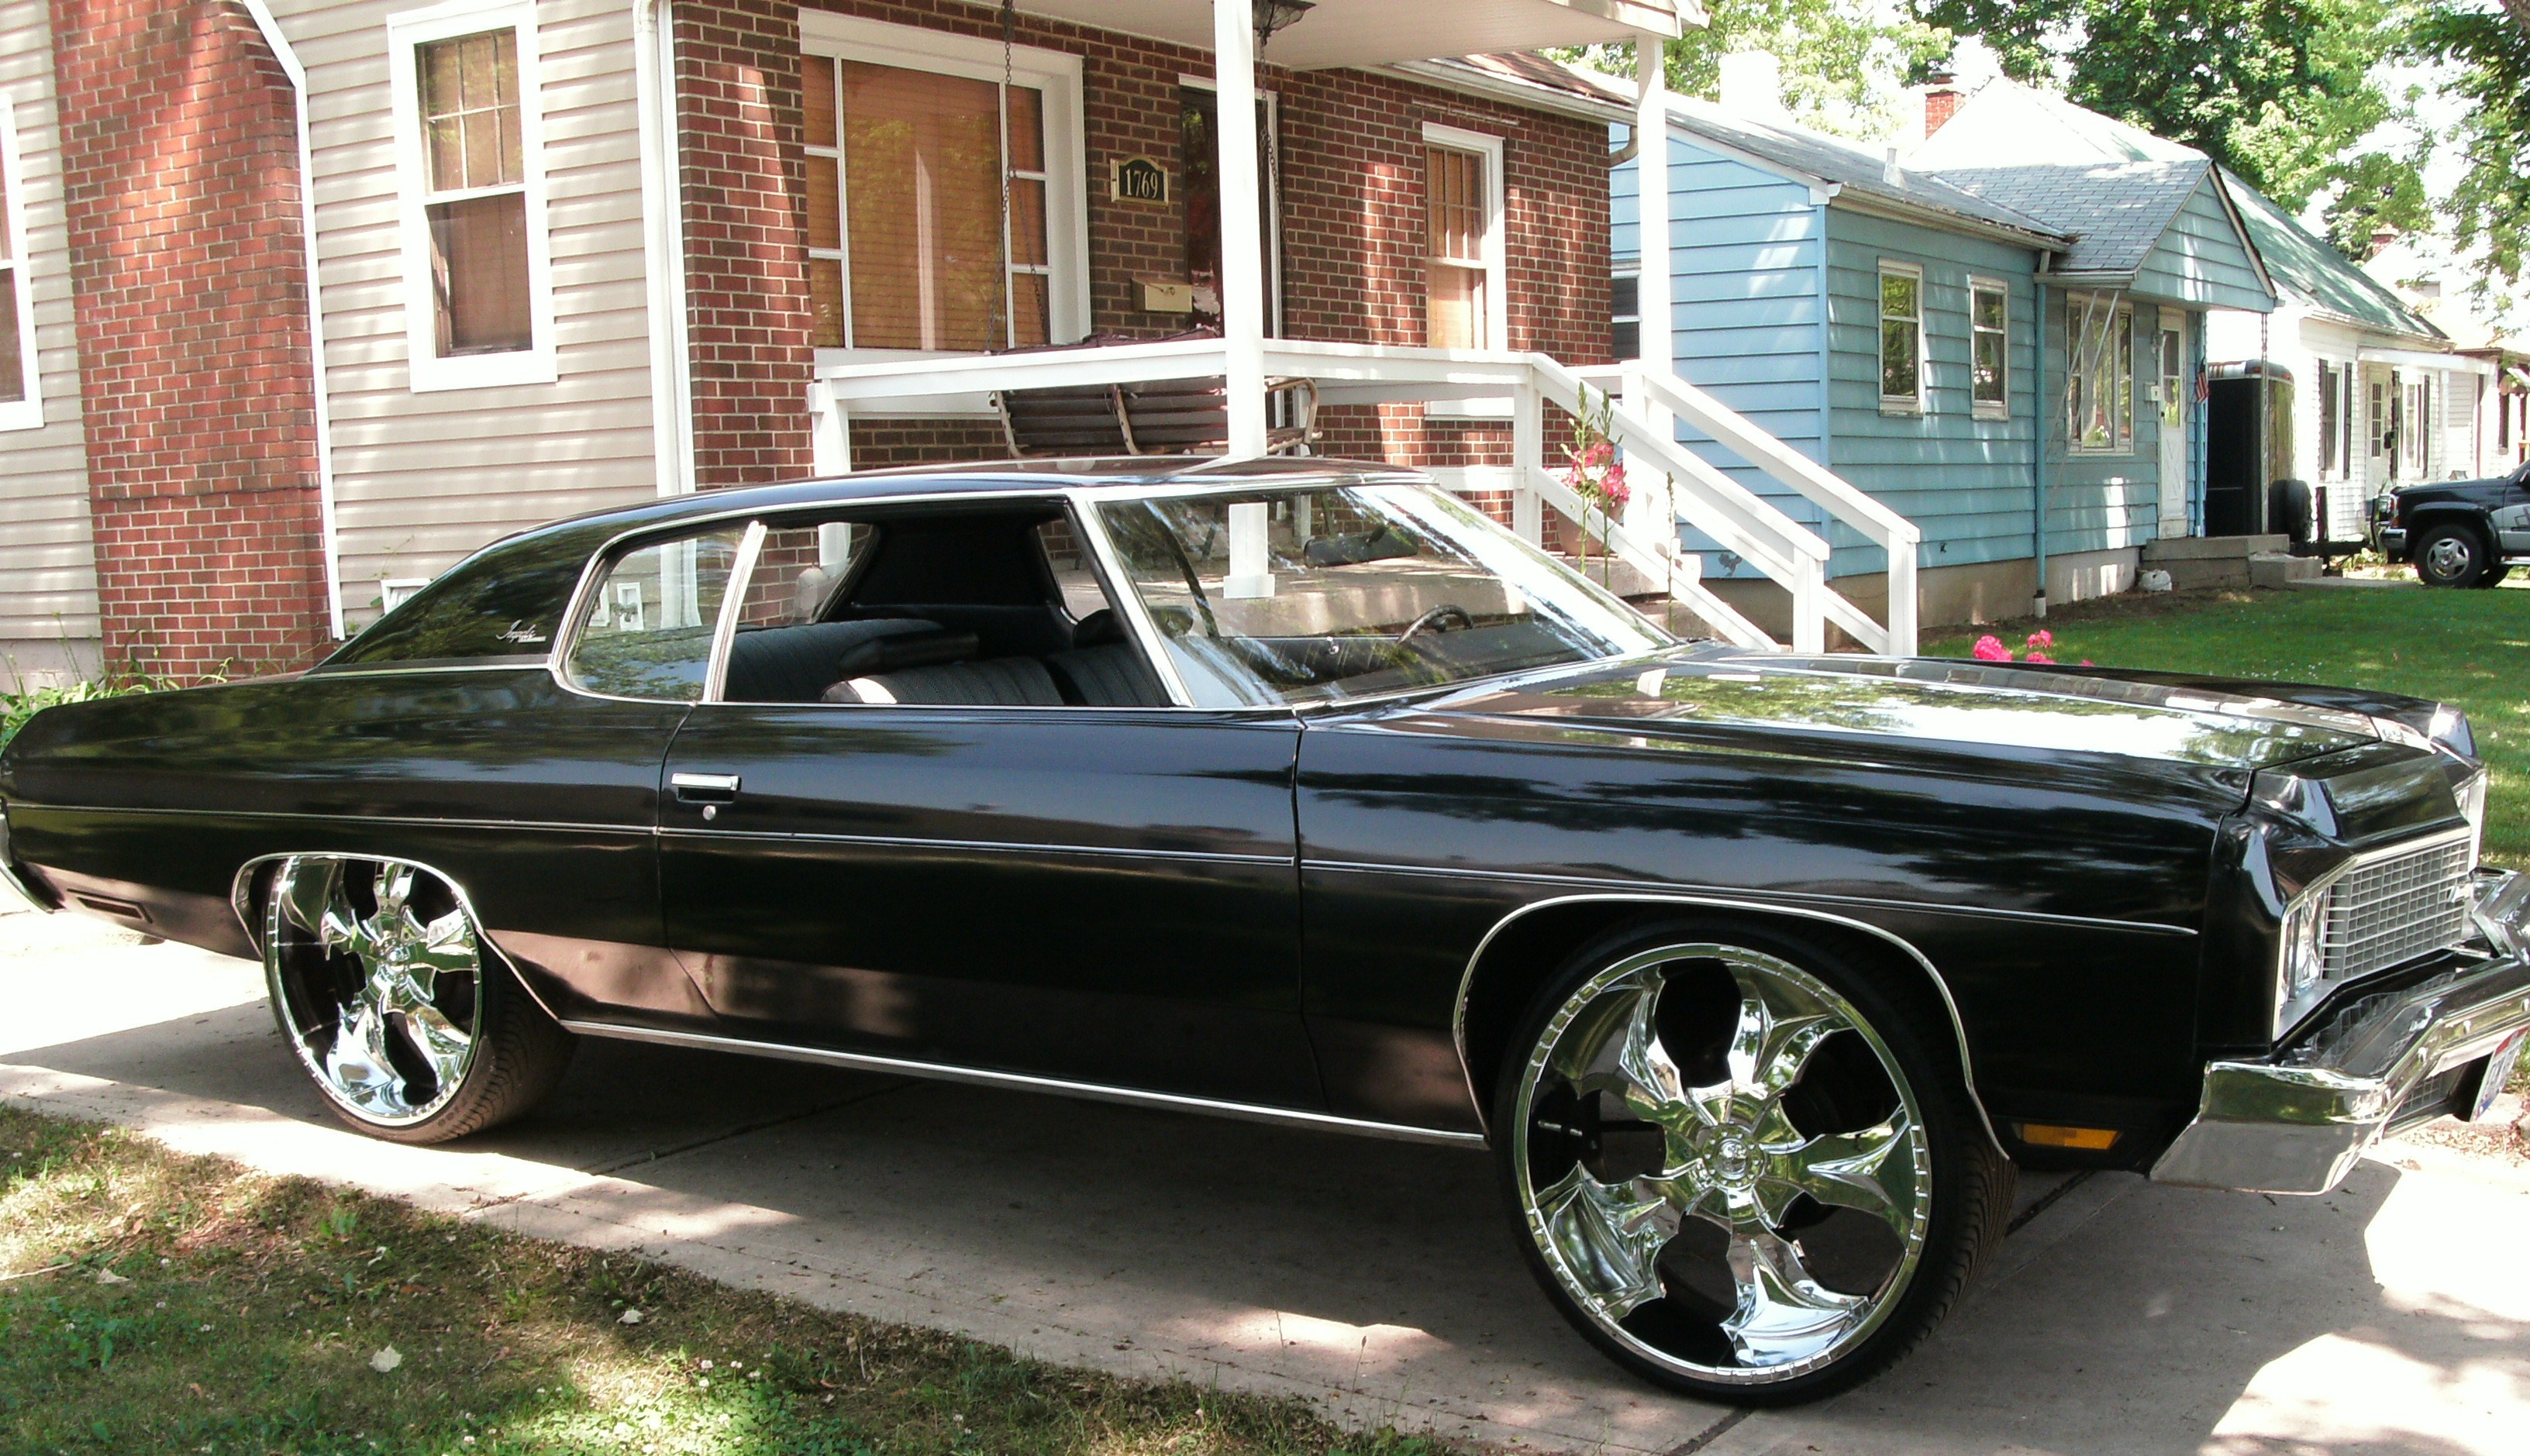 Audi Of Austin >> milltiket 1973 Chevrolet Impala Specs, Photos ...